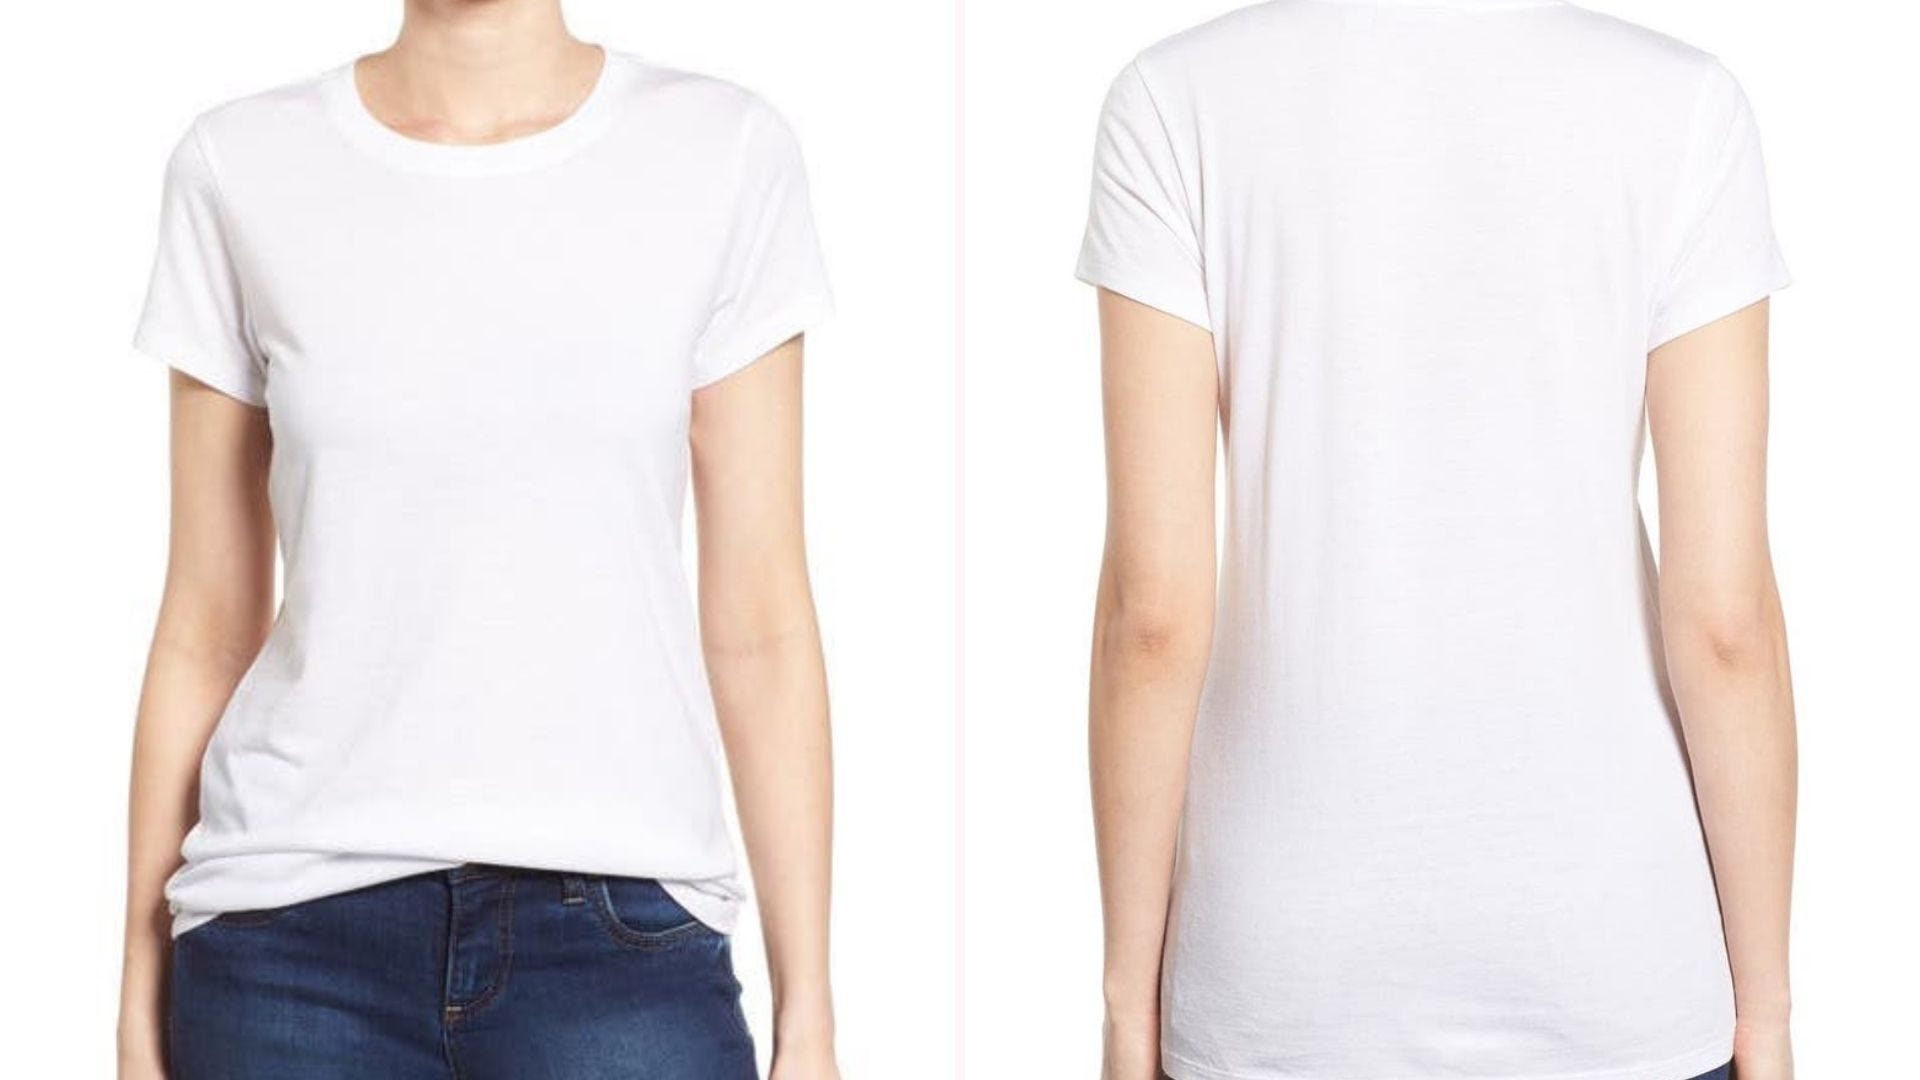 Front and back view of a woman wearing a white t-shirt